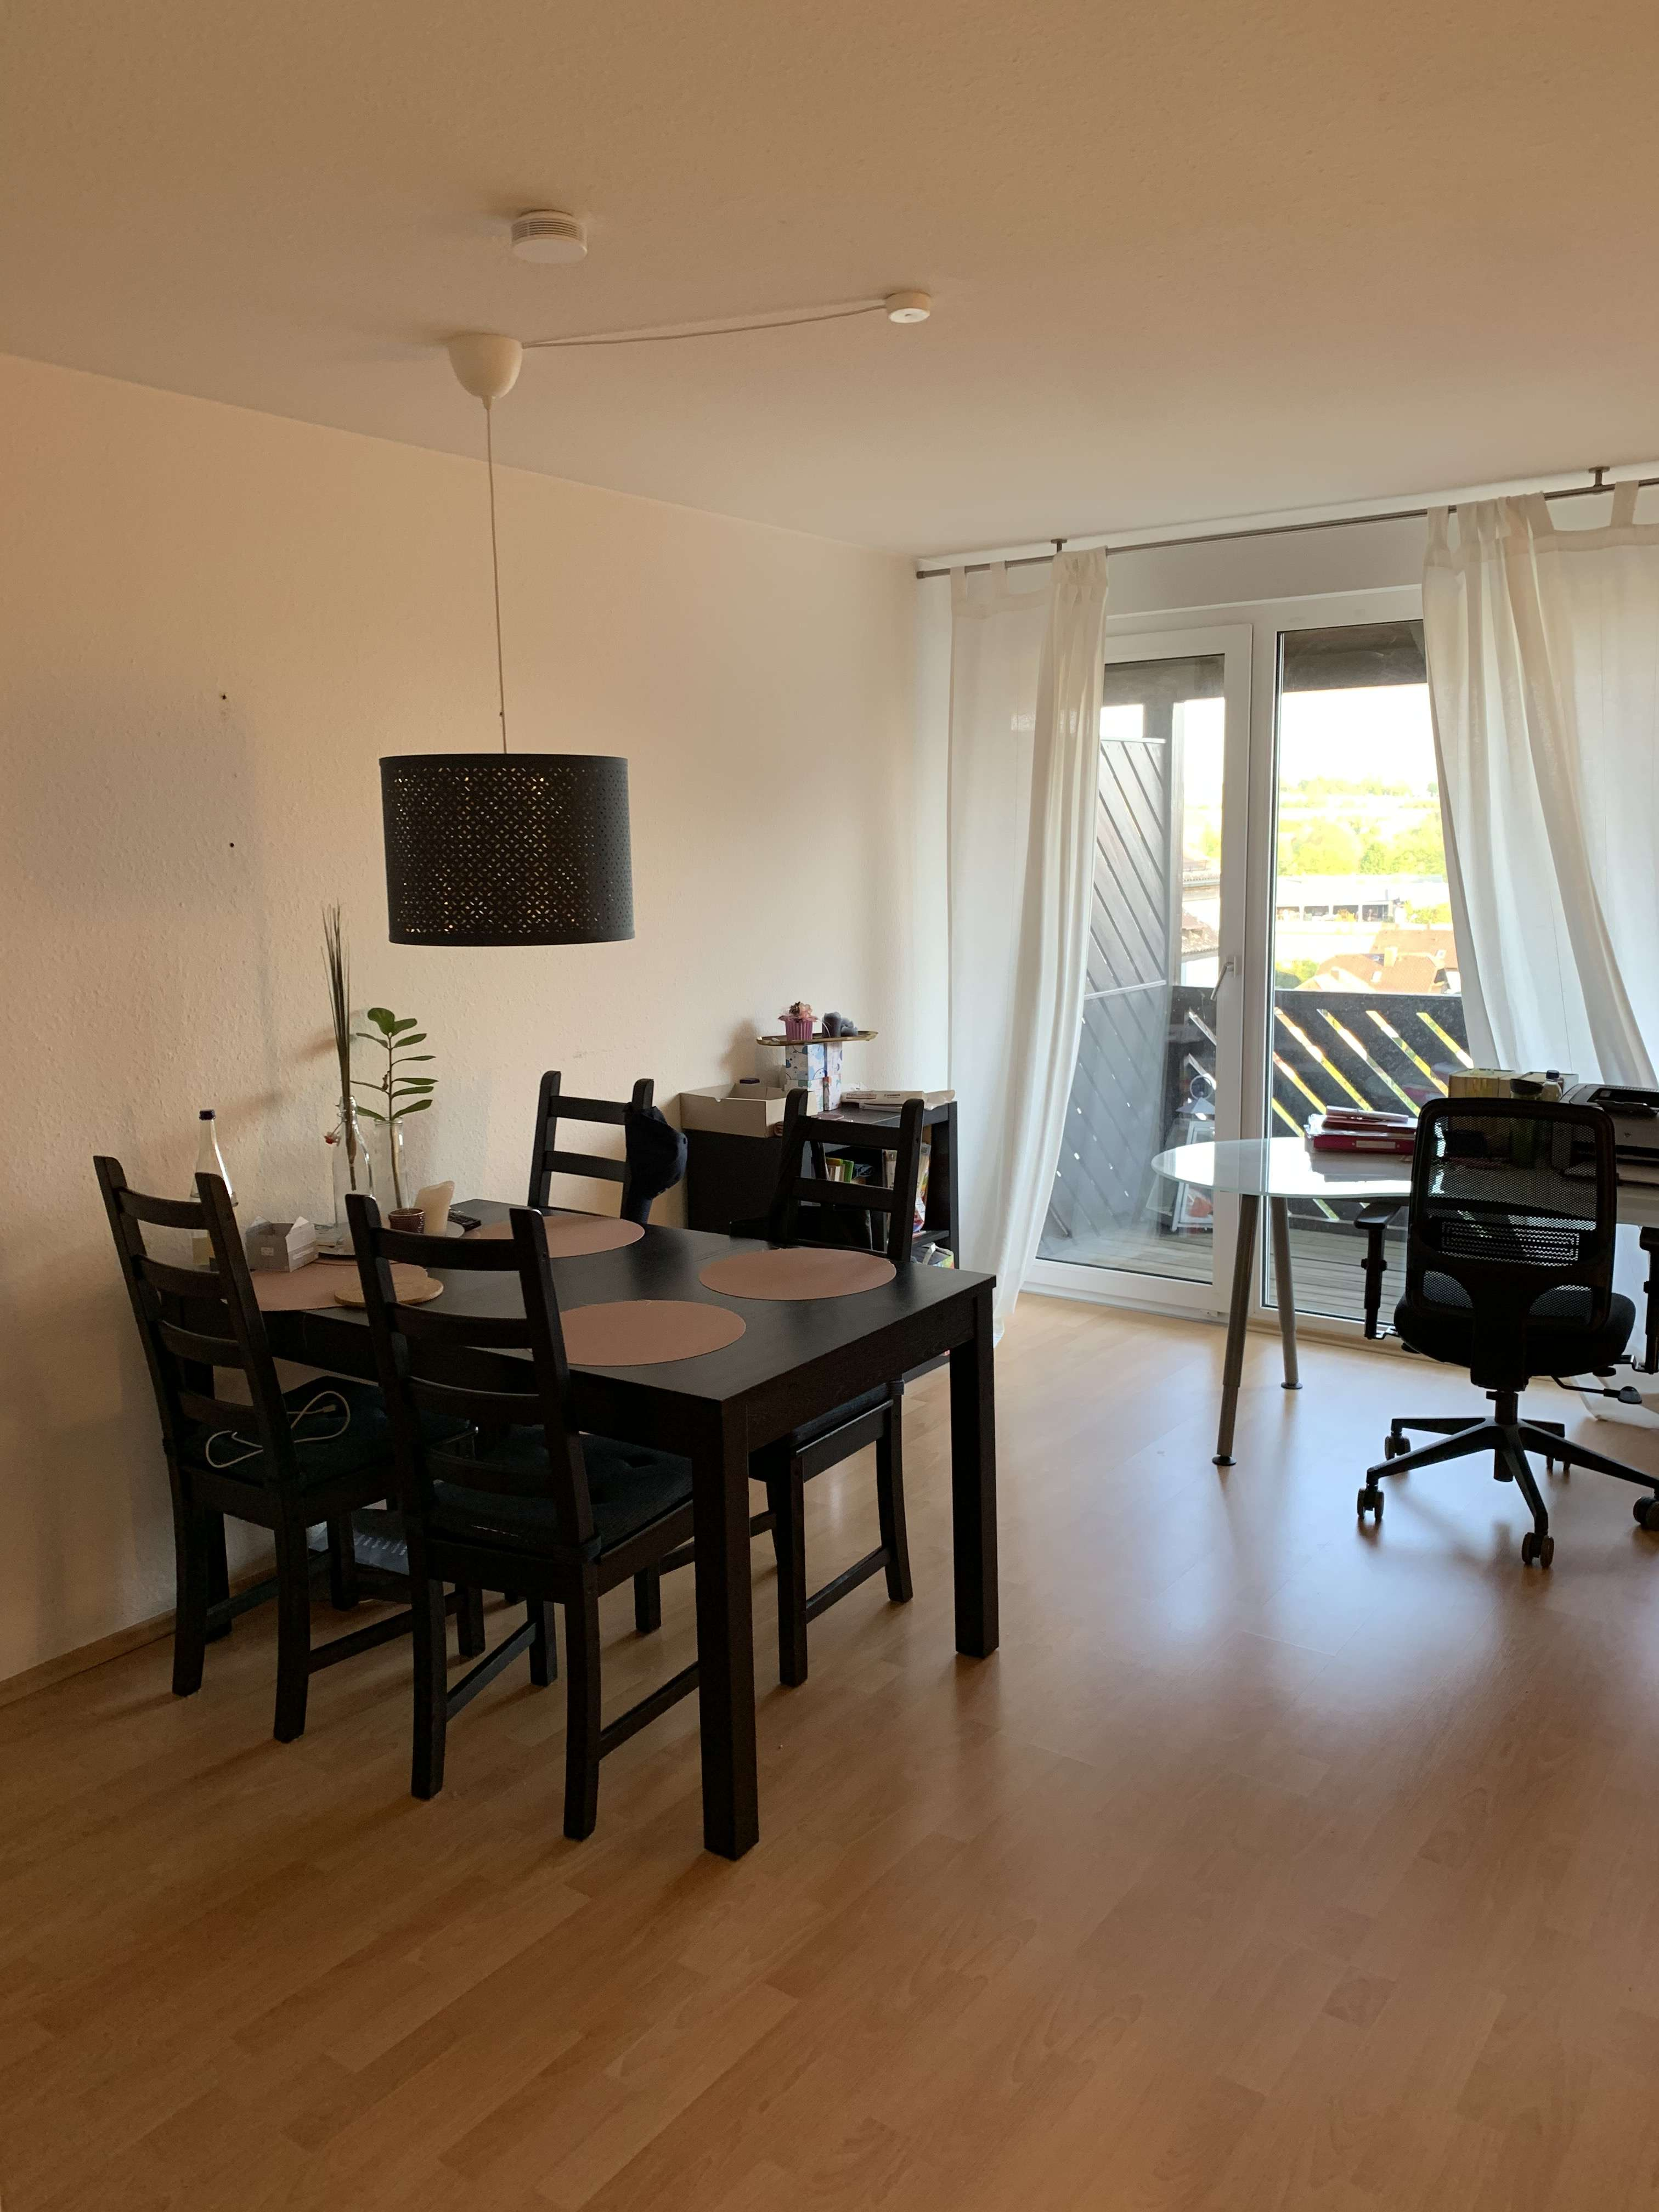 Tolles 1-Zimmer Apartment mit Balkon in Top Lage in